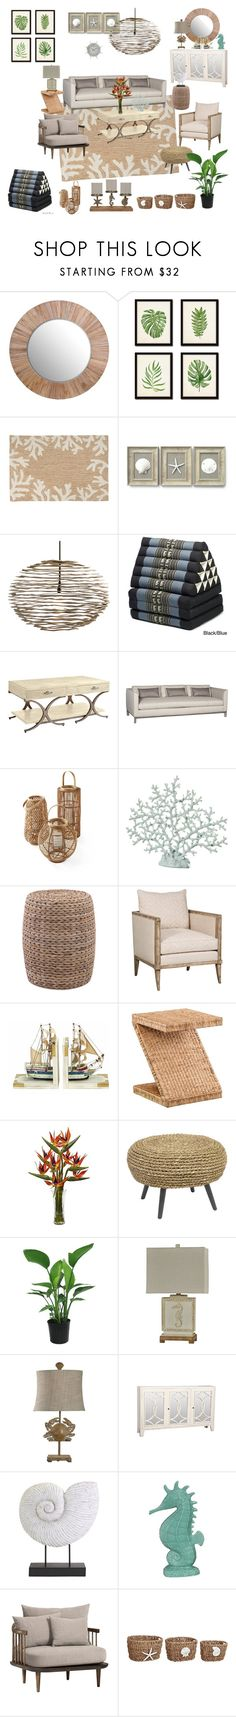 """Coastal Home"" by silverlime2013 ❤ liked on Polyvore featuring interior, interiors, interior design, home, home decor, interior decorating, Liora Manné, Sisley, Serena & Lily and Benzara"